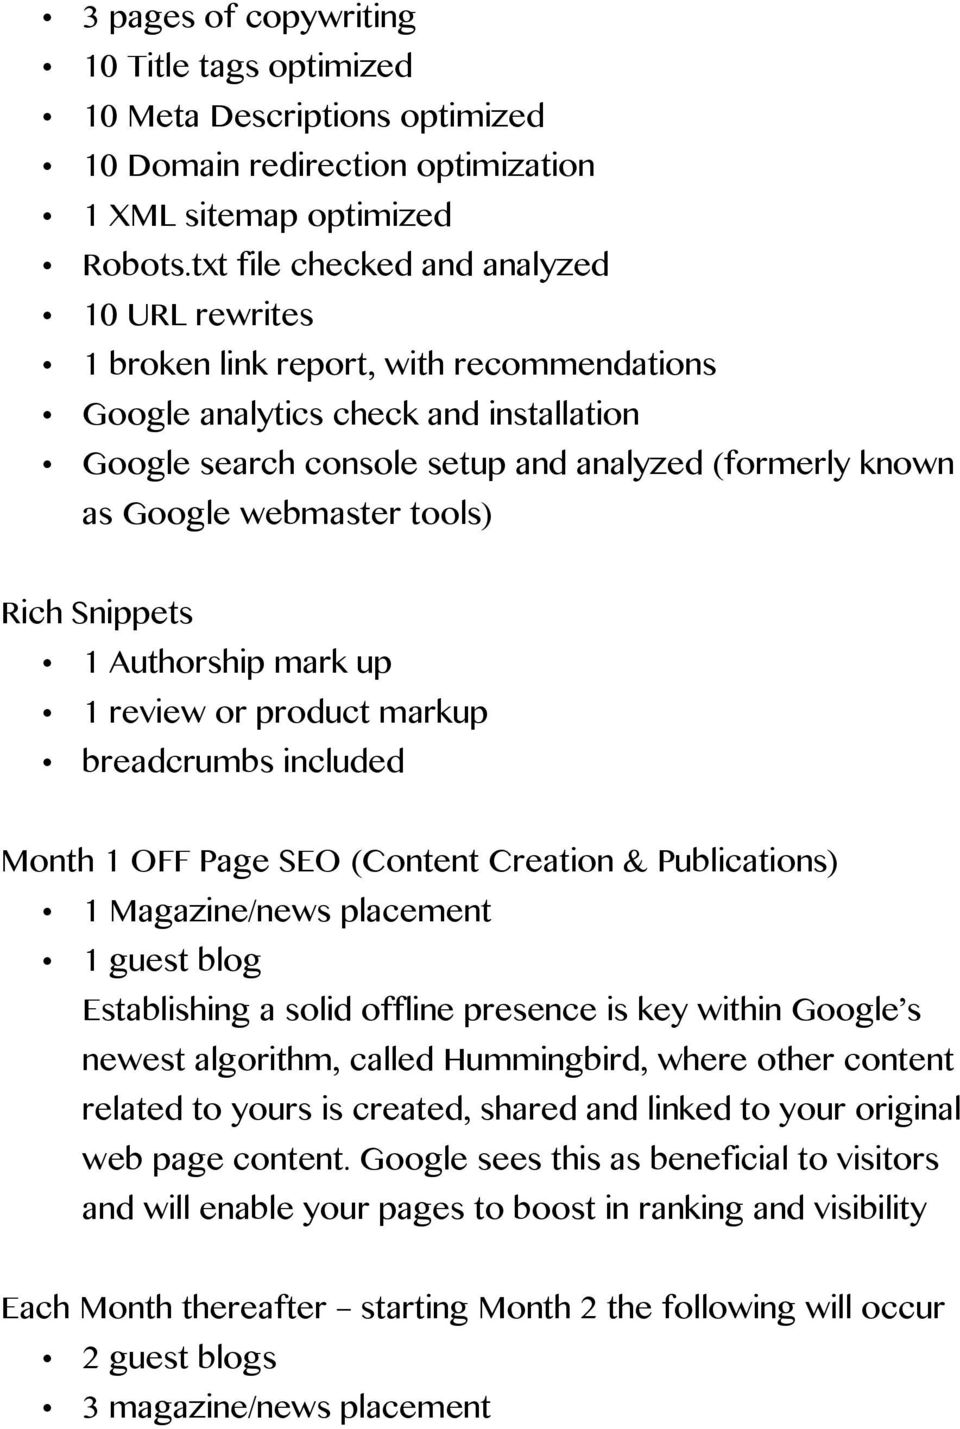 webmaster tools) Rich Snippets 1 Authorship mark up 1 review or product markup breadcrumbs included Month 1 OFF Page SEO (Content Creation & Publications) 1 Magazine/news placement 1 guest blog